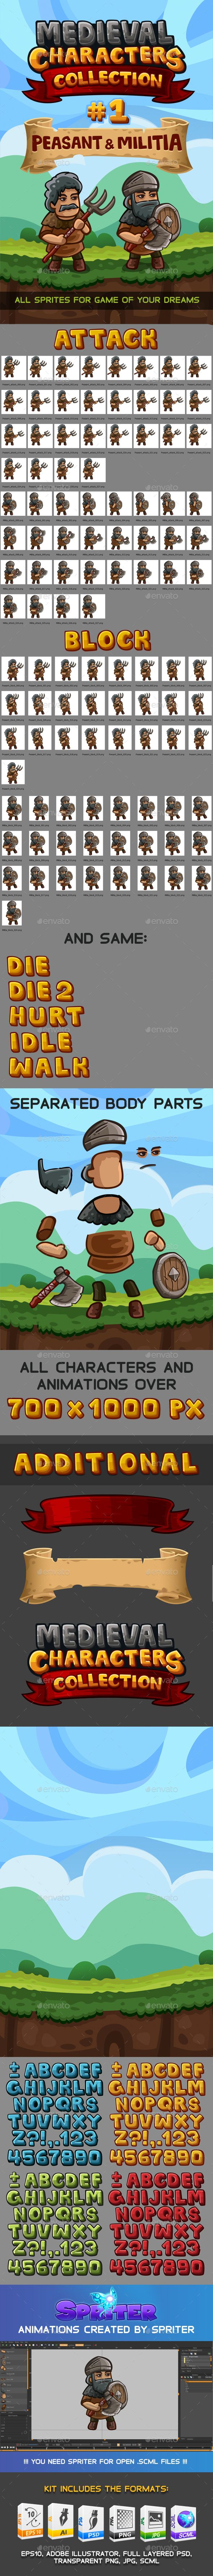 Medieval Game Sprites Characters Collection #1 — Photoshop PSD #peasant #fun • Available here → https://graphicriver.net/item/medieval-game-sprites-characters-collection-1/14074893?ref=pxcr